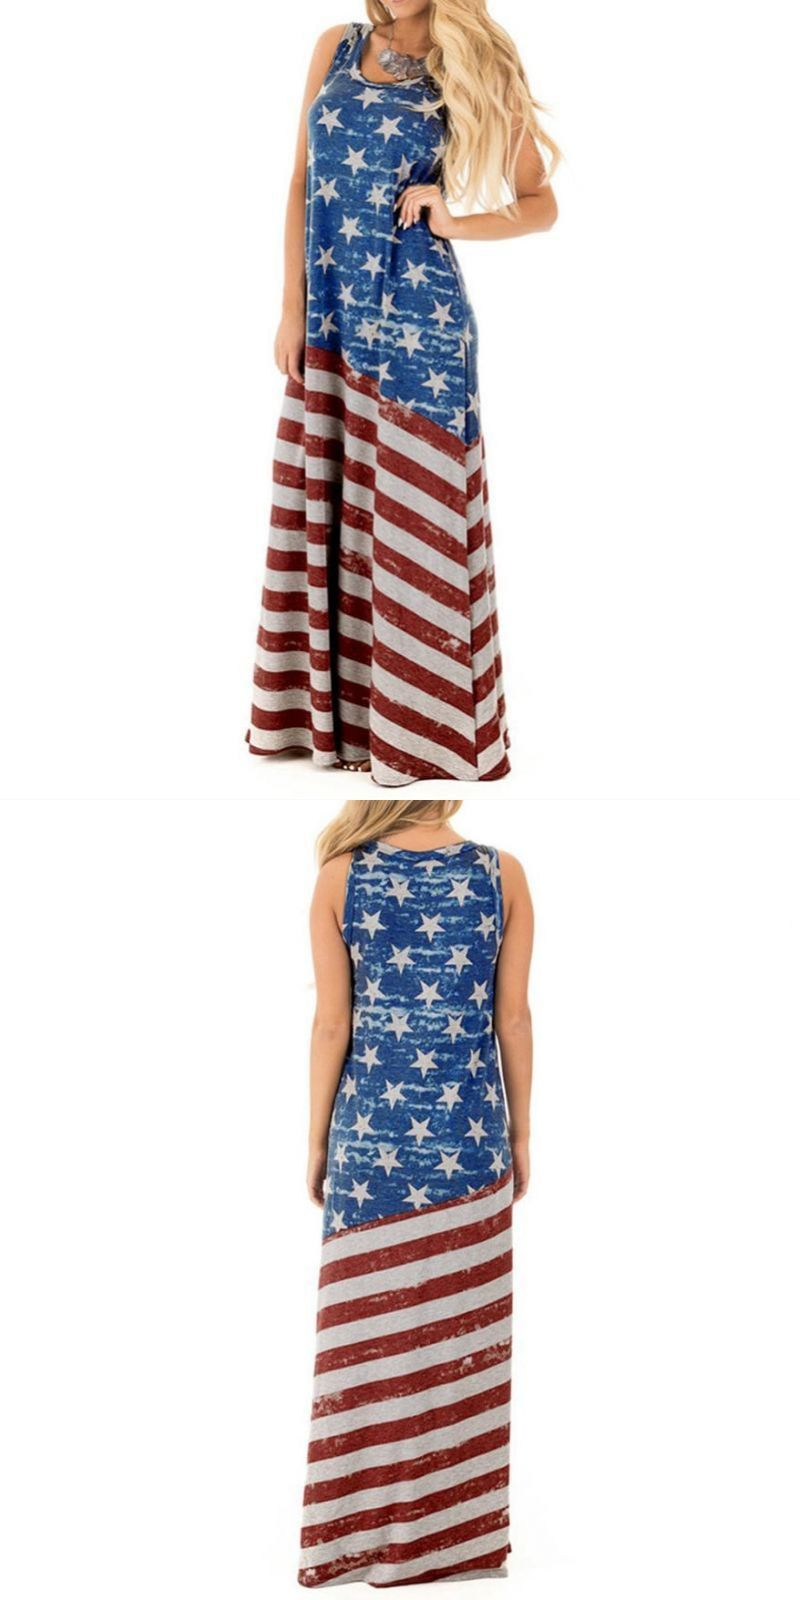 801965f18a0f 2018 sexy women flag print dress 4th of july loose sundress round ...